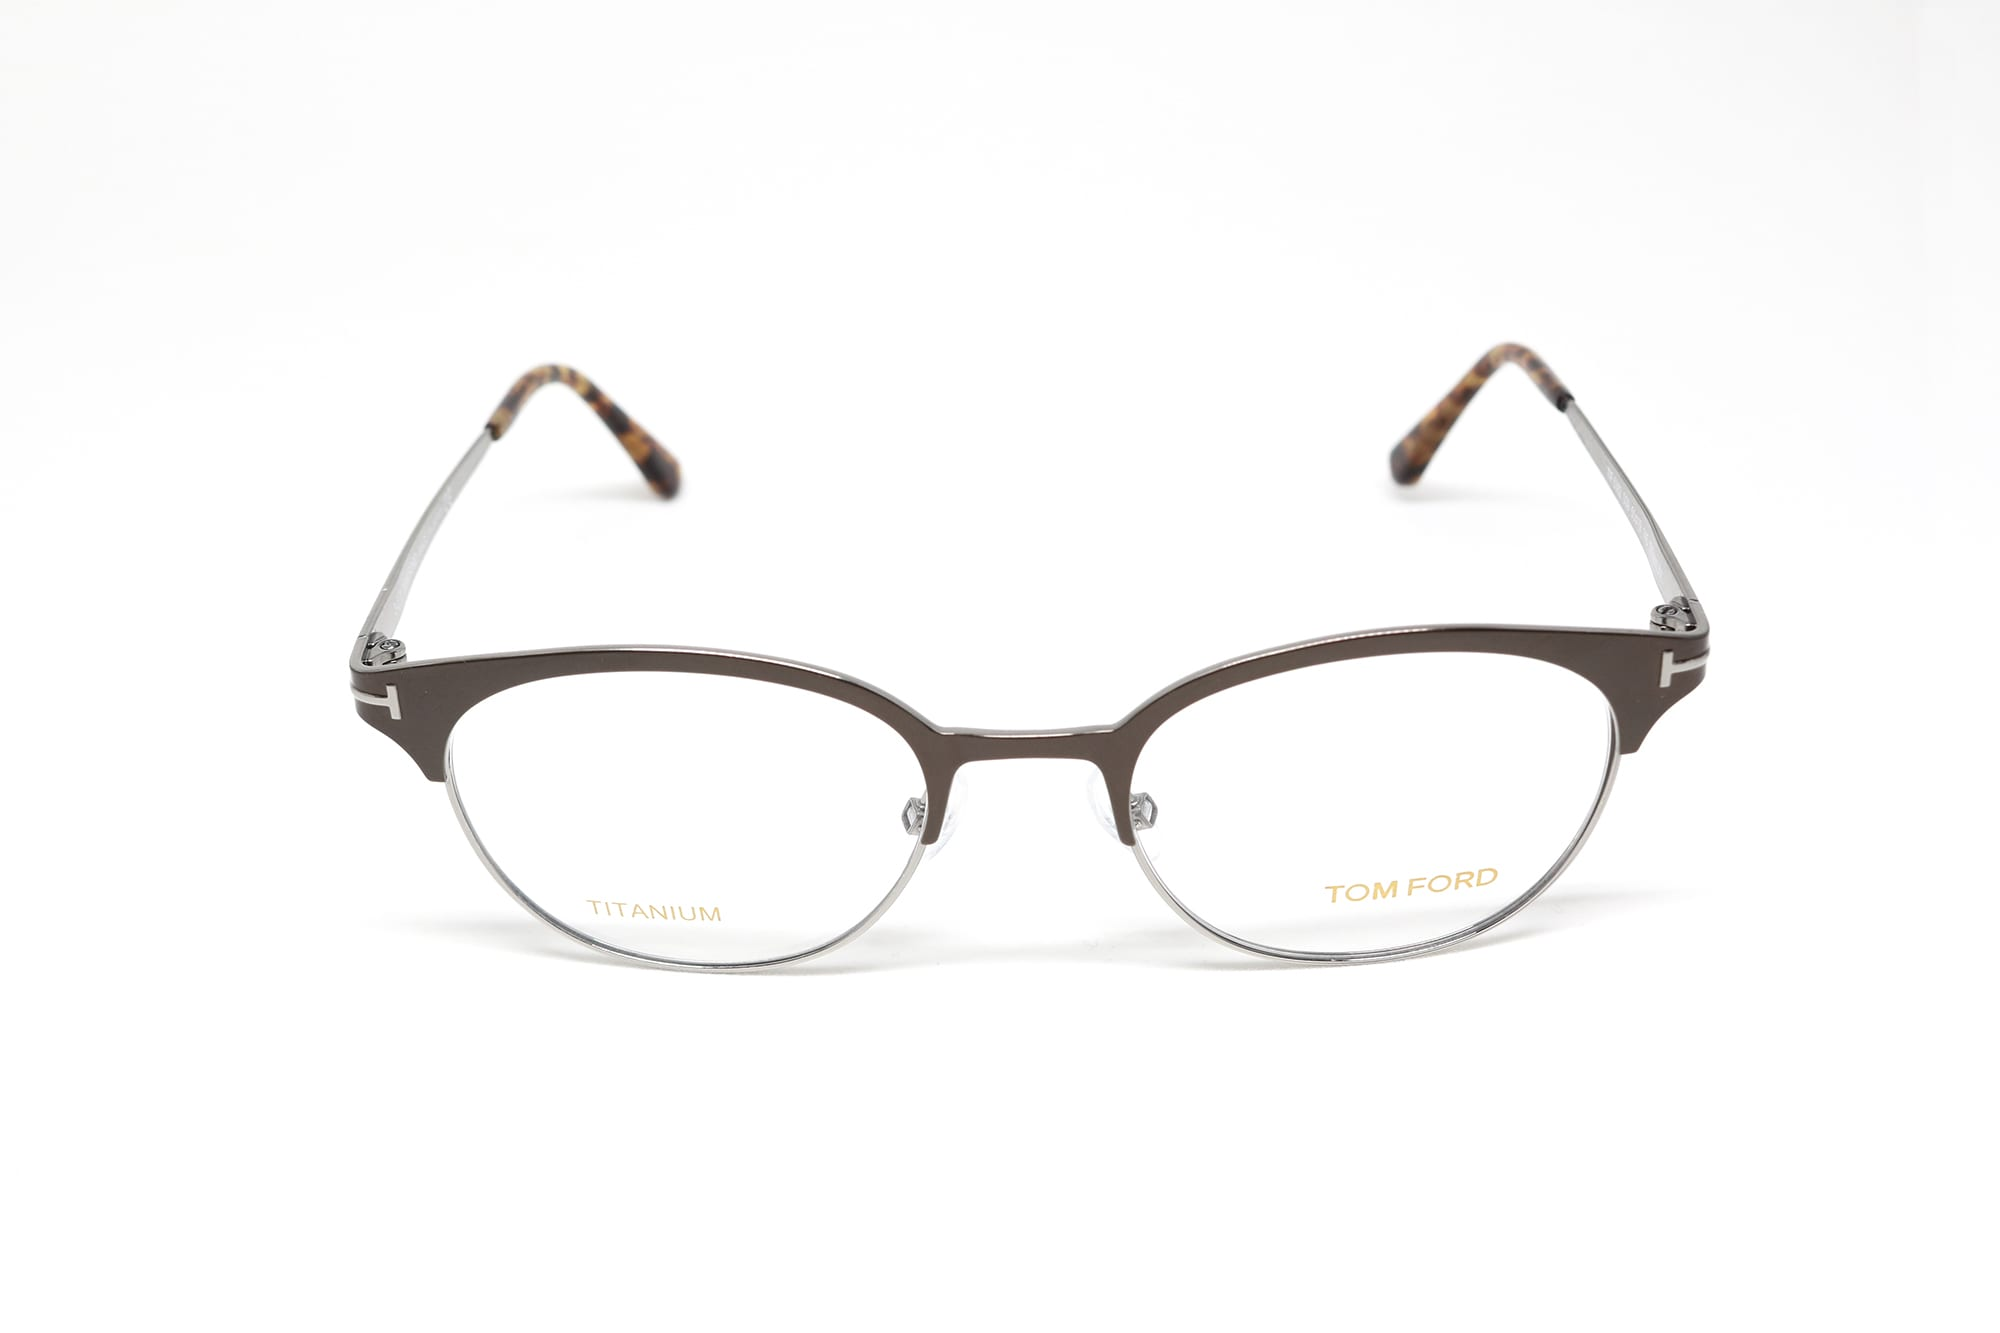 Tom Ford Optical Glasses Chicago